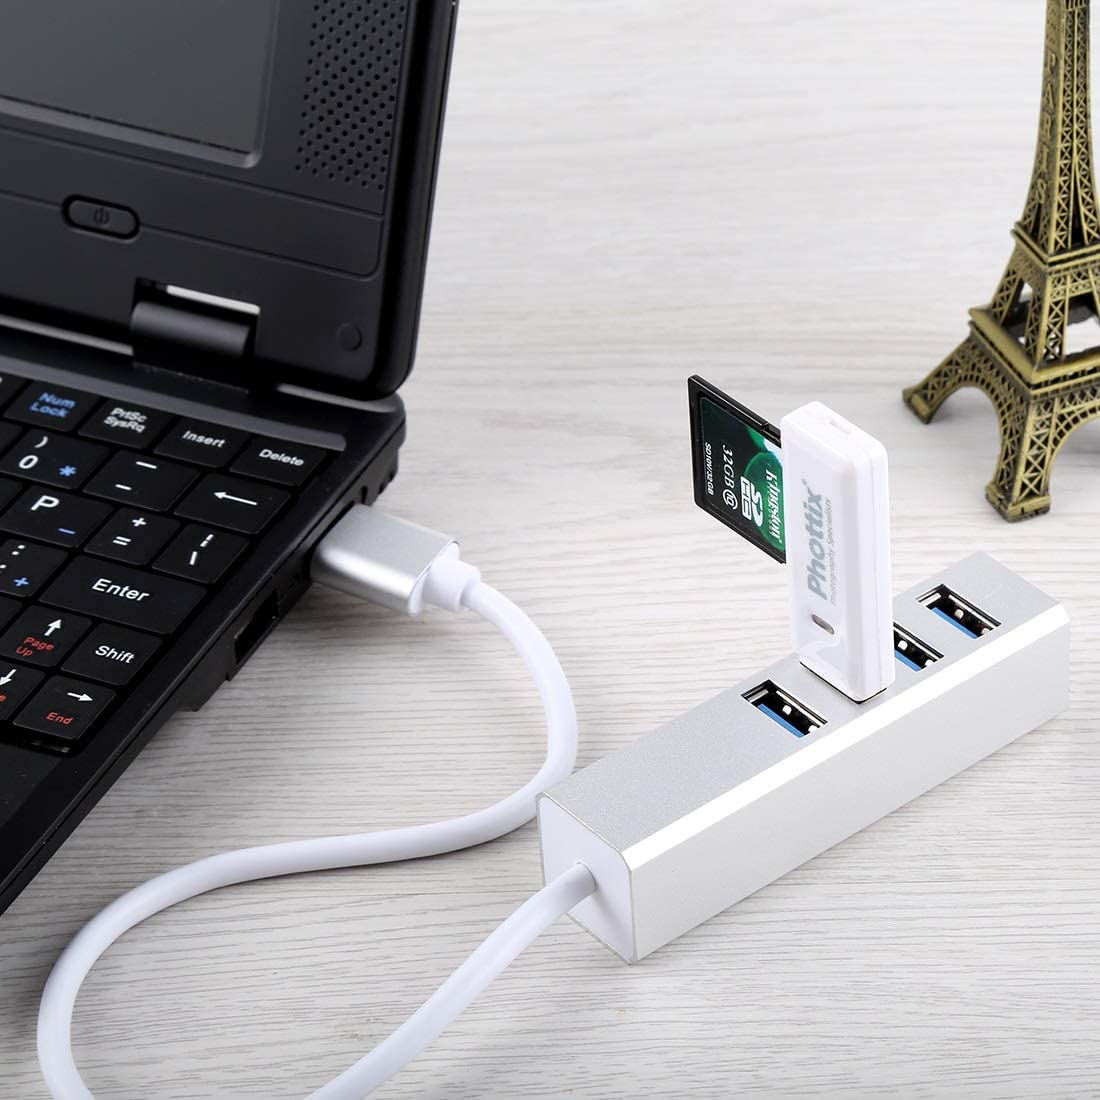 Leya Networking Products 5Gbps Super Speed Self//Bus Power 4 Ports USB 3.0 HUB Color : Silver Silver